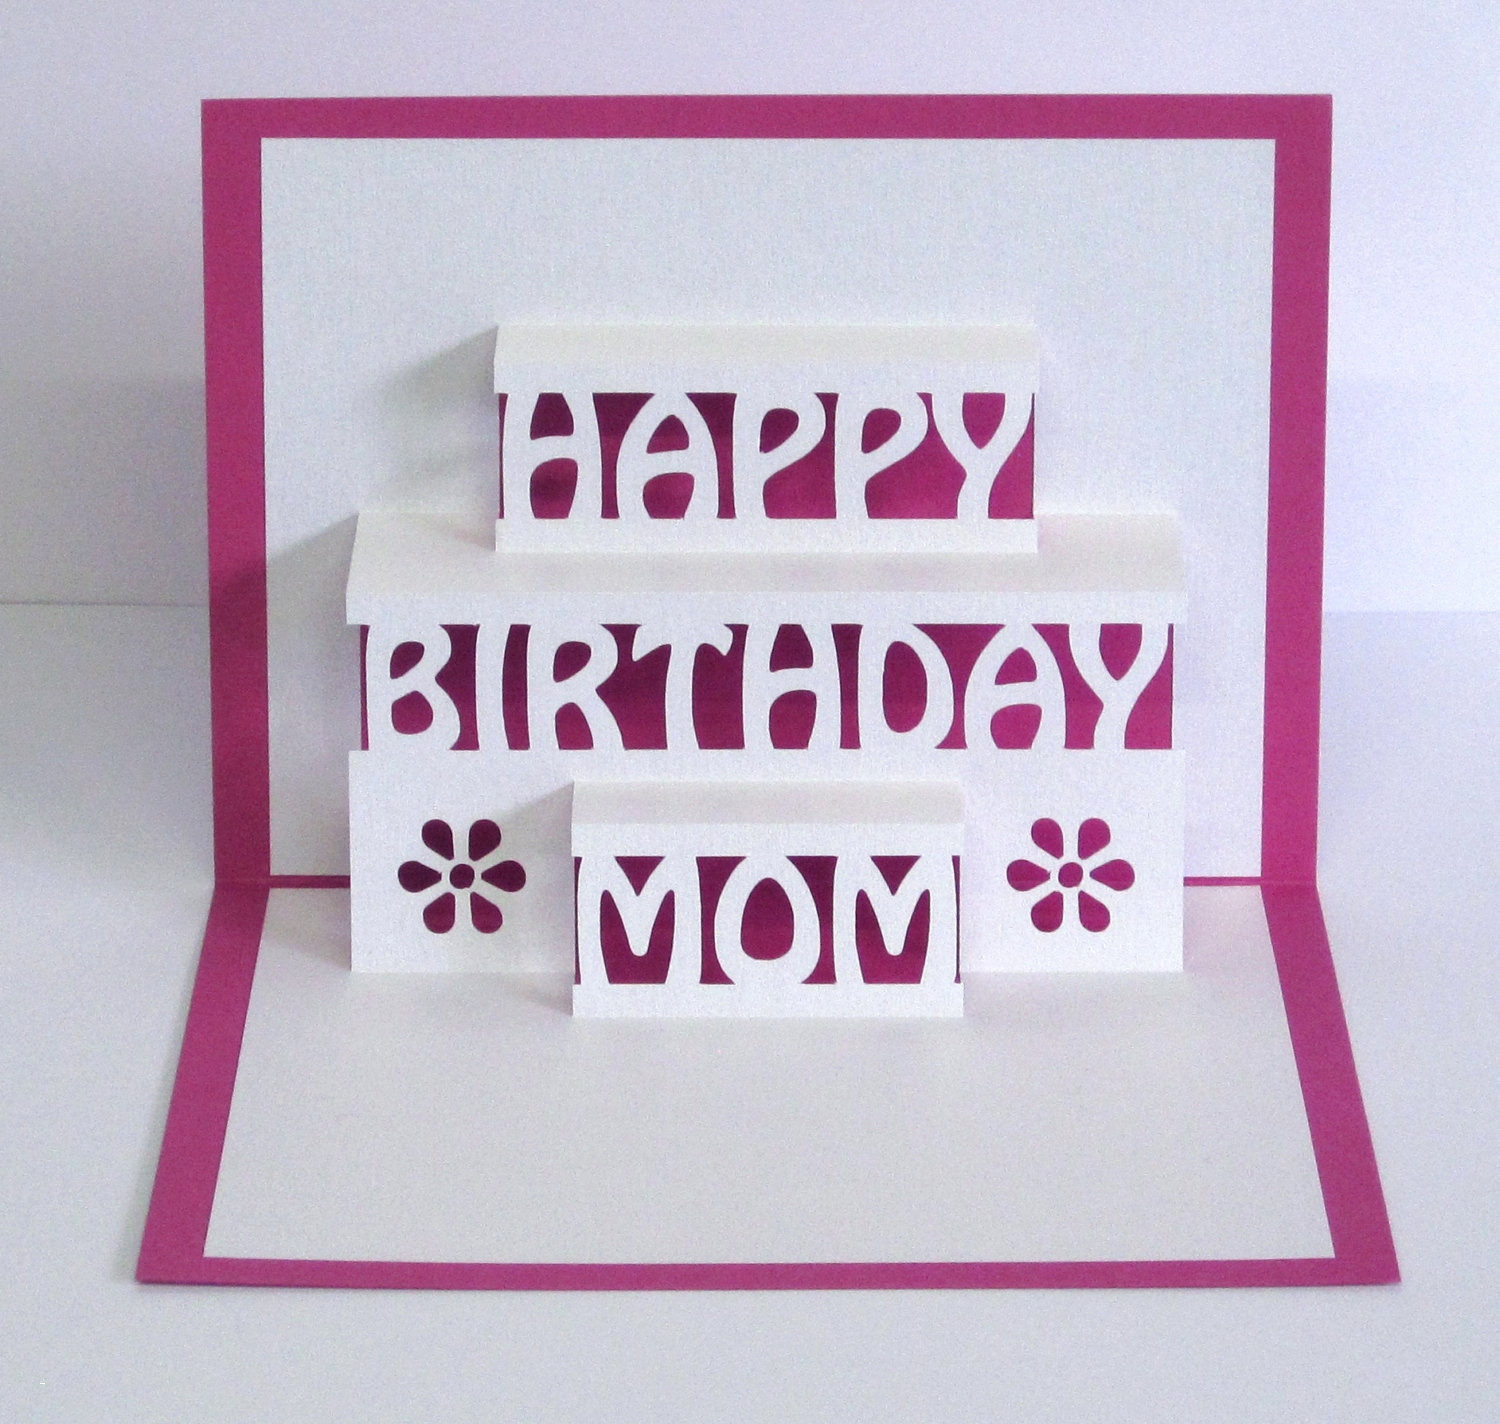 Birthday Cards Ideas For Mom Birthday Card From Mom To Daughter Happy Birthday Mom Cards Best